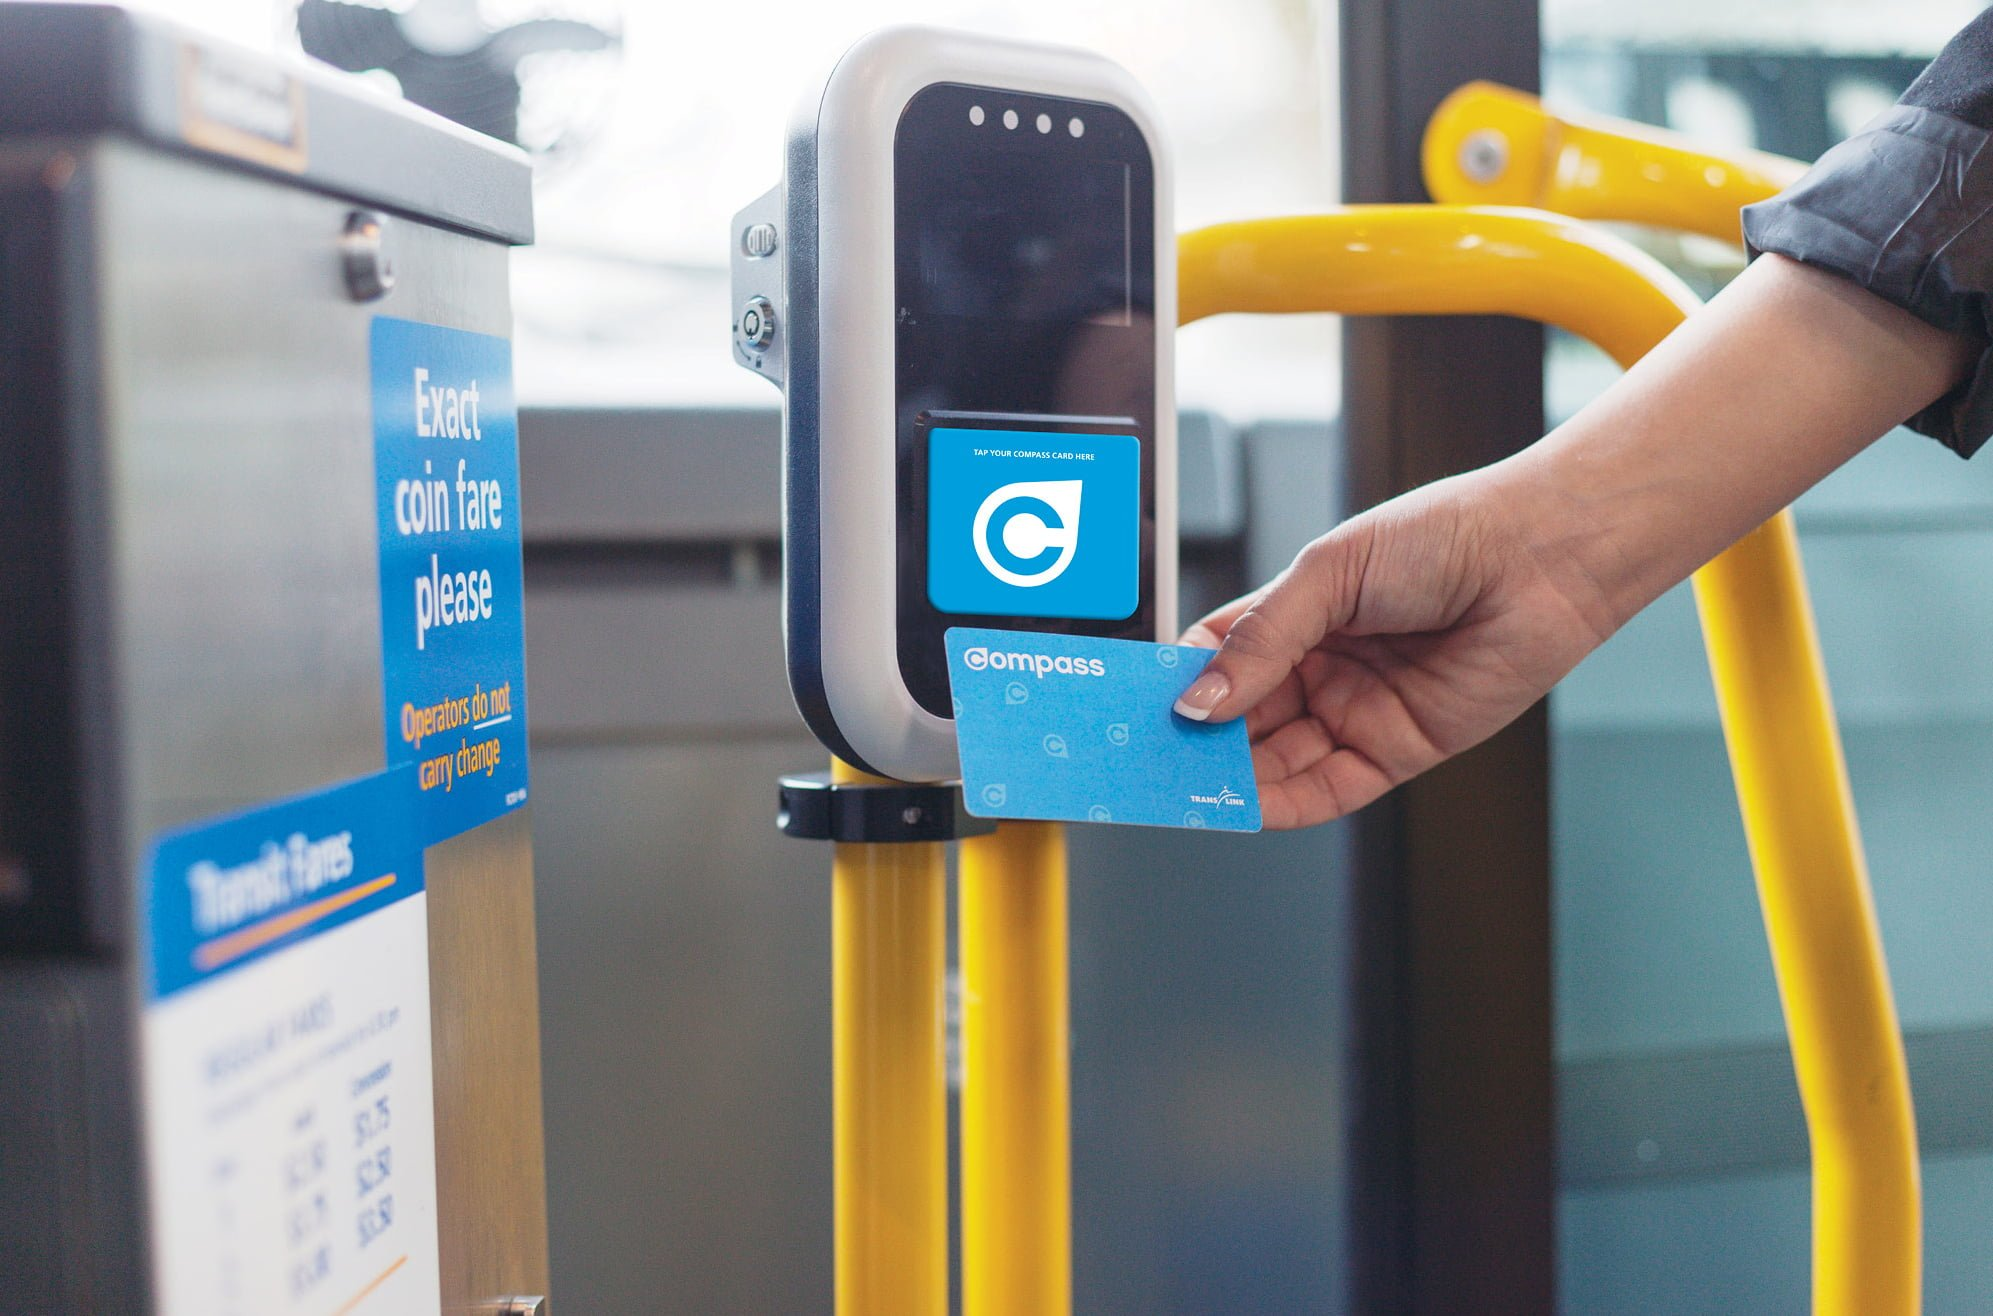 Has The Compass Card Lost Direction?